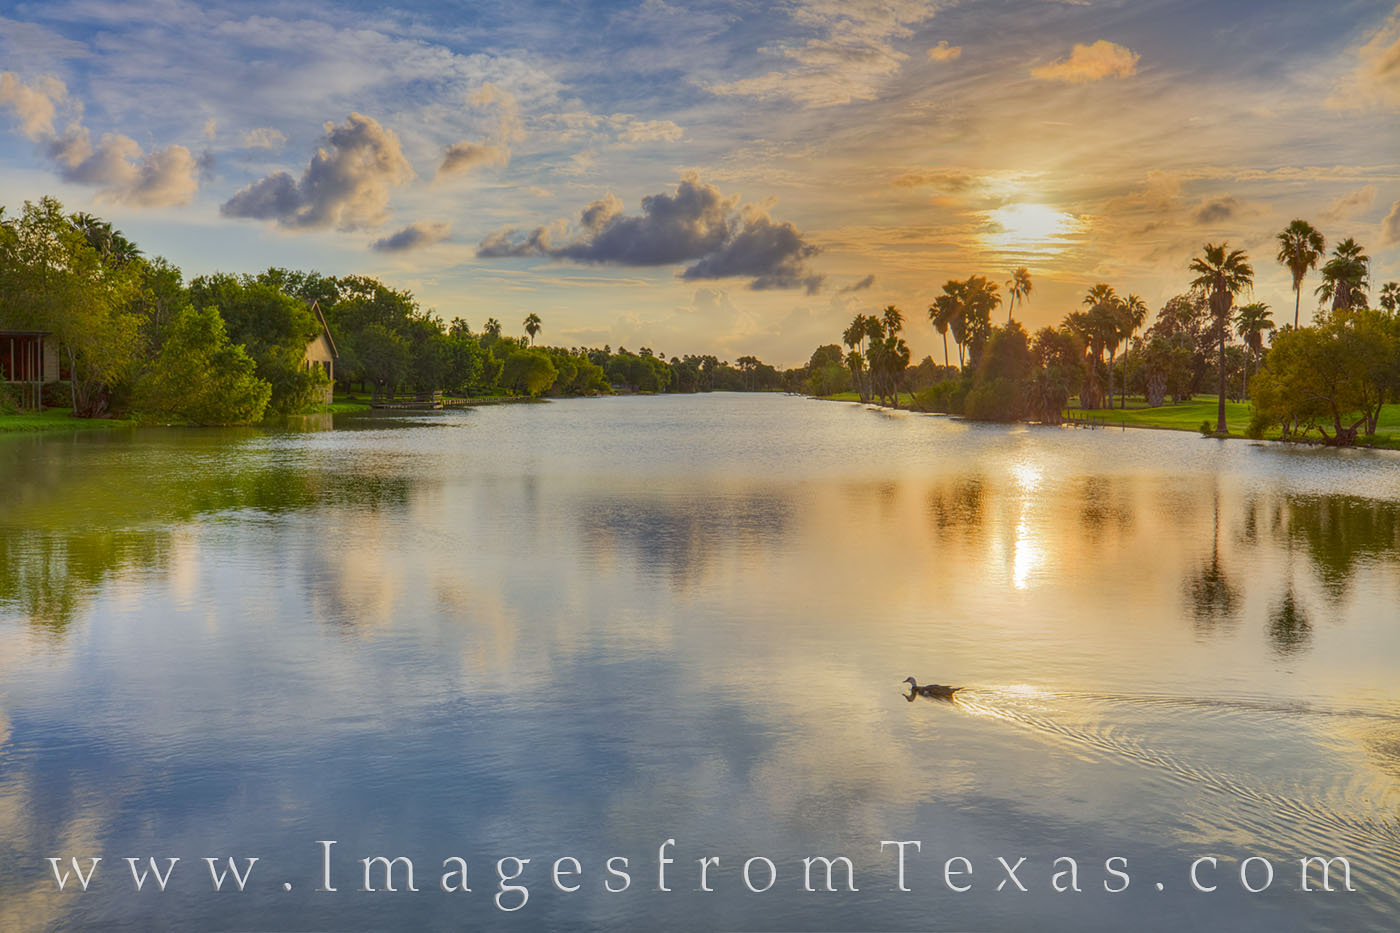 resaca, brownsville, rio grande, cameron county, water, waterways, sunset, south texas, peace, duck, photo